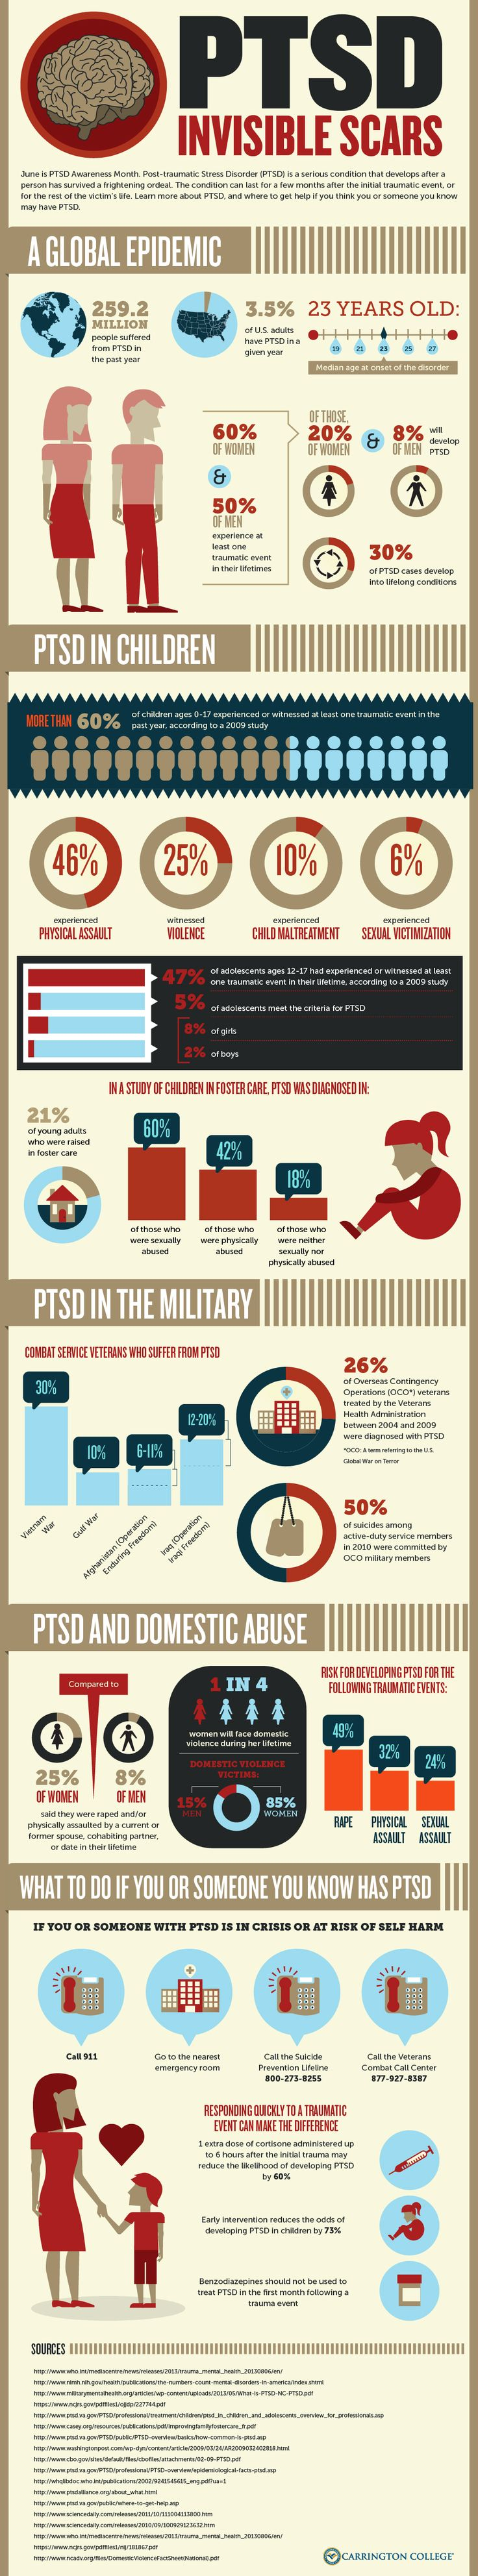 best ideas about stress disorders post traumatic invisible scars sounds accurate for how this must feel infographic ptsdptsd statisticsptsd factsdisorder